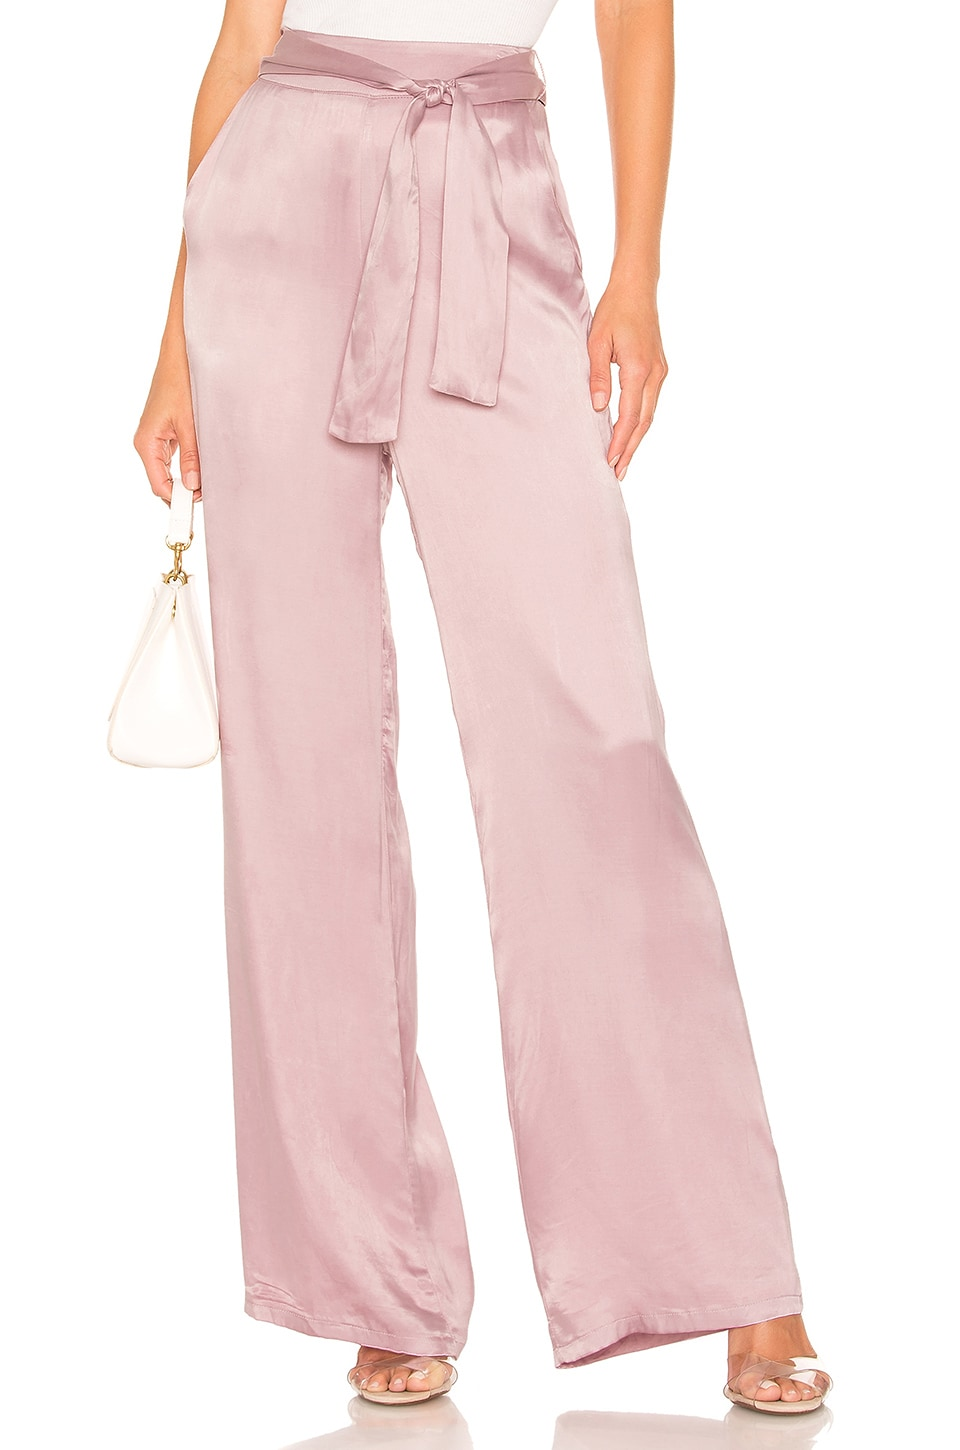 Lovers + Friends Ariana Pant in Lilac